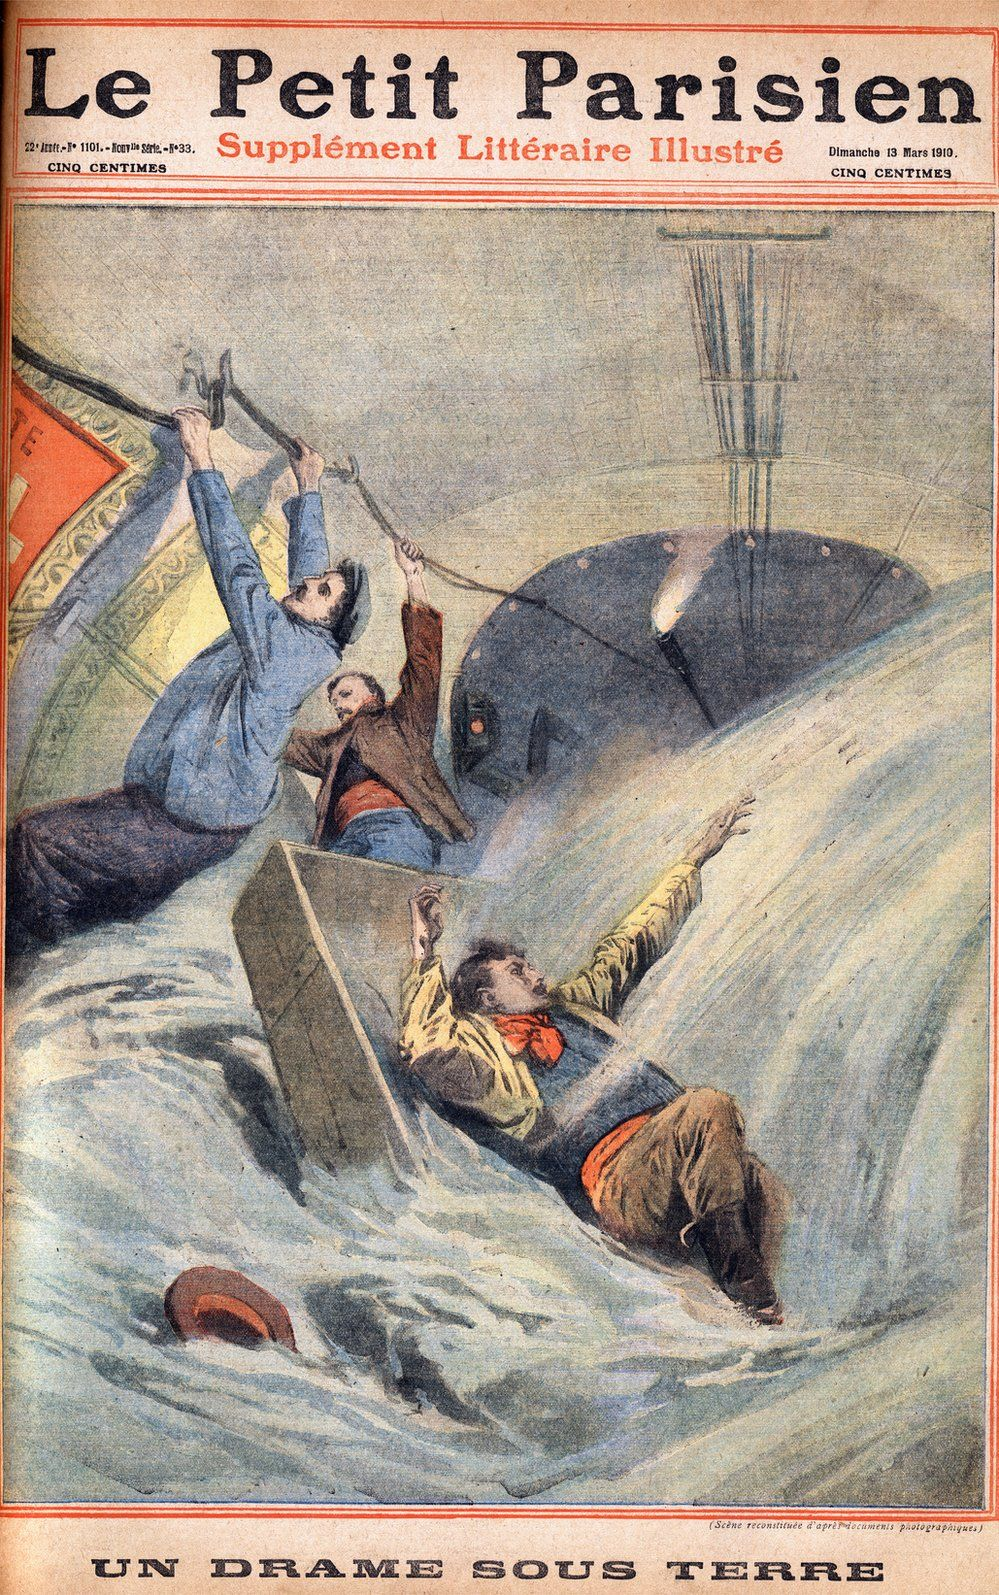 newspaper cover with cartoon of men crashing through underground tunnel through waves of water